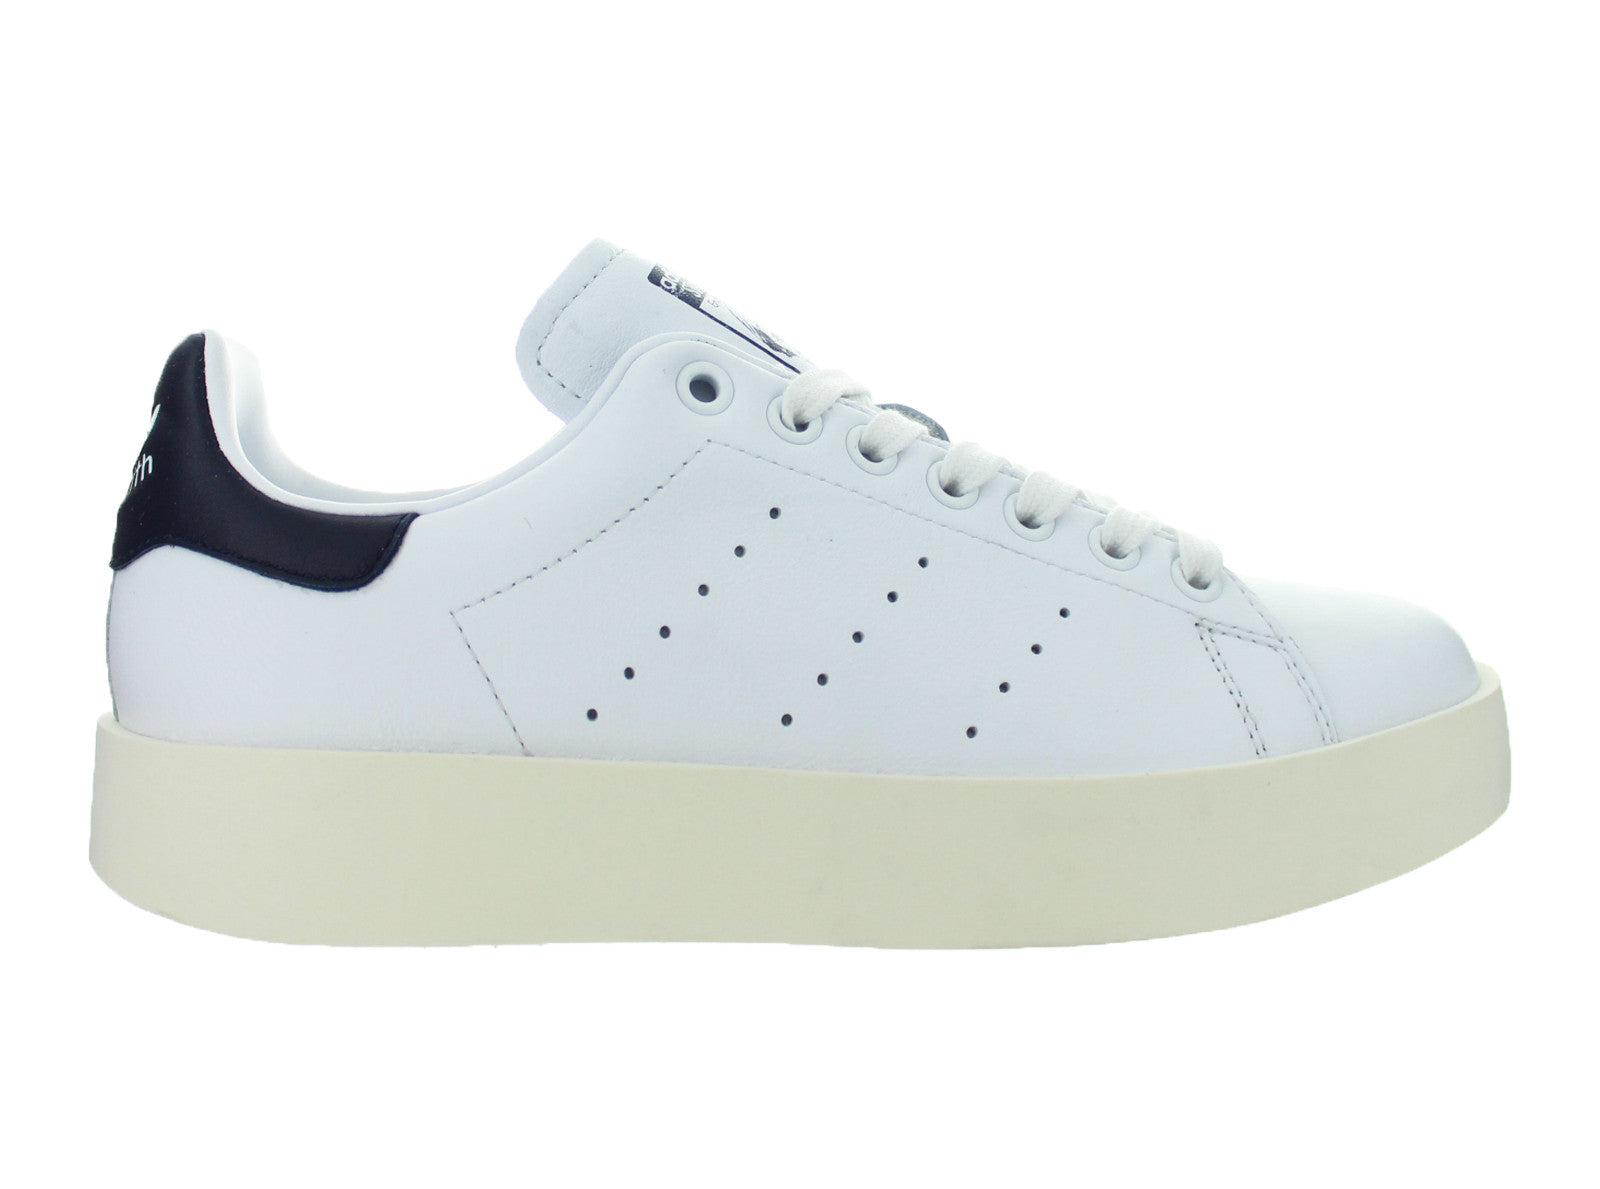 factory price 9a273 1d9dd Details about Womens Adidas Stan Smith Bold White Collegiate Navy BA7770